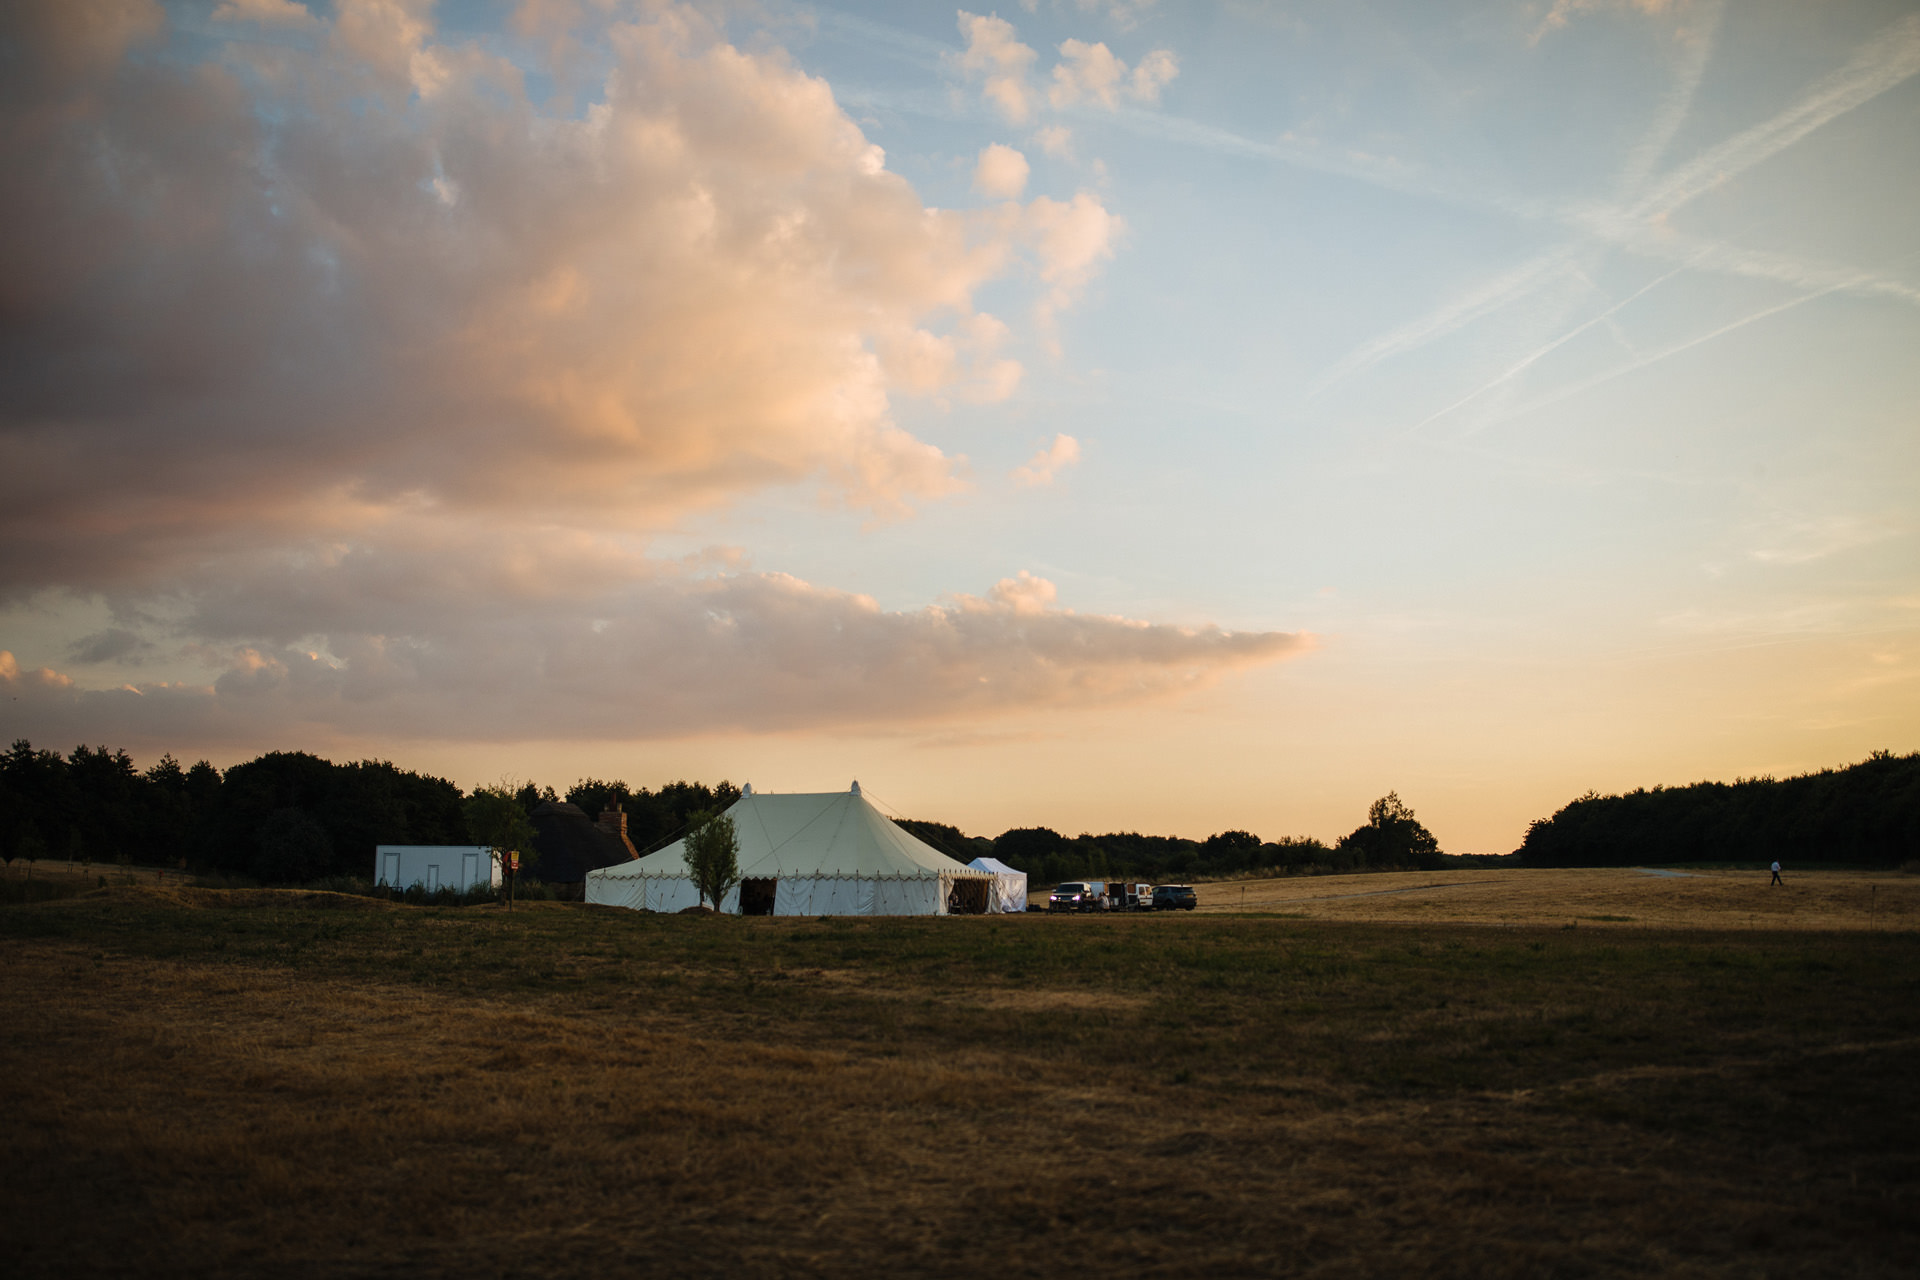 kentfield farm wedding marquee in corn field against pink sky at sunset